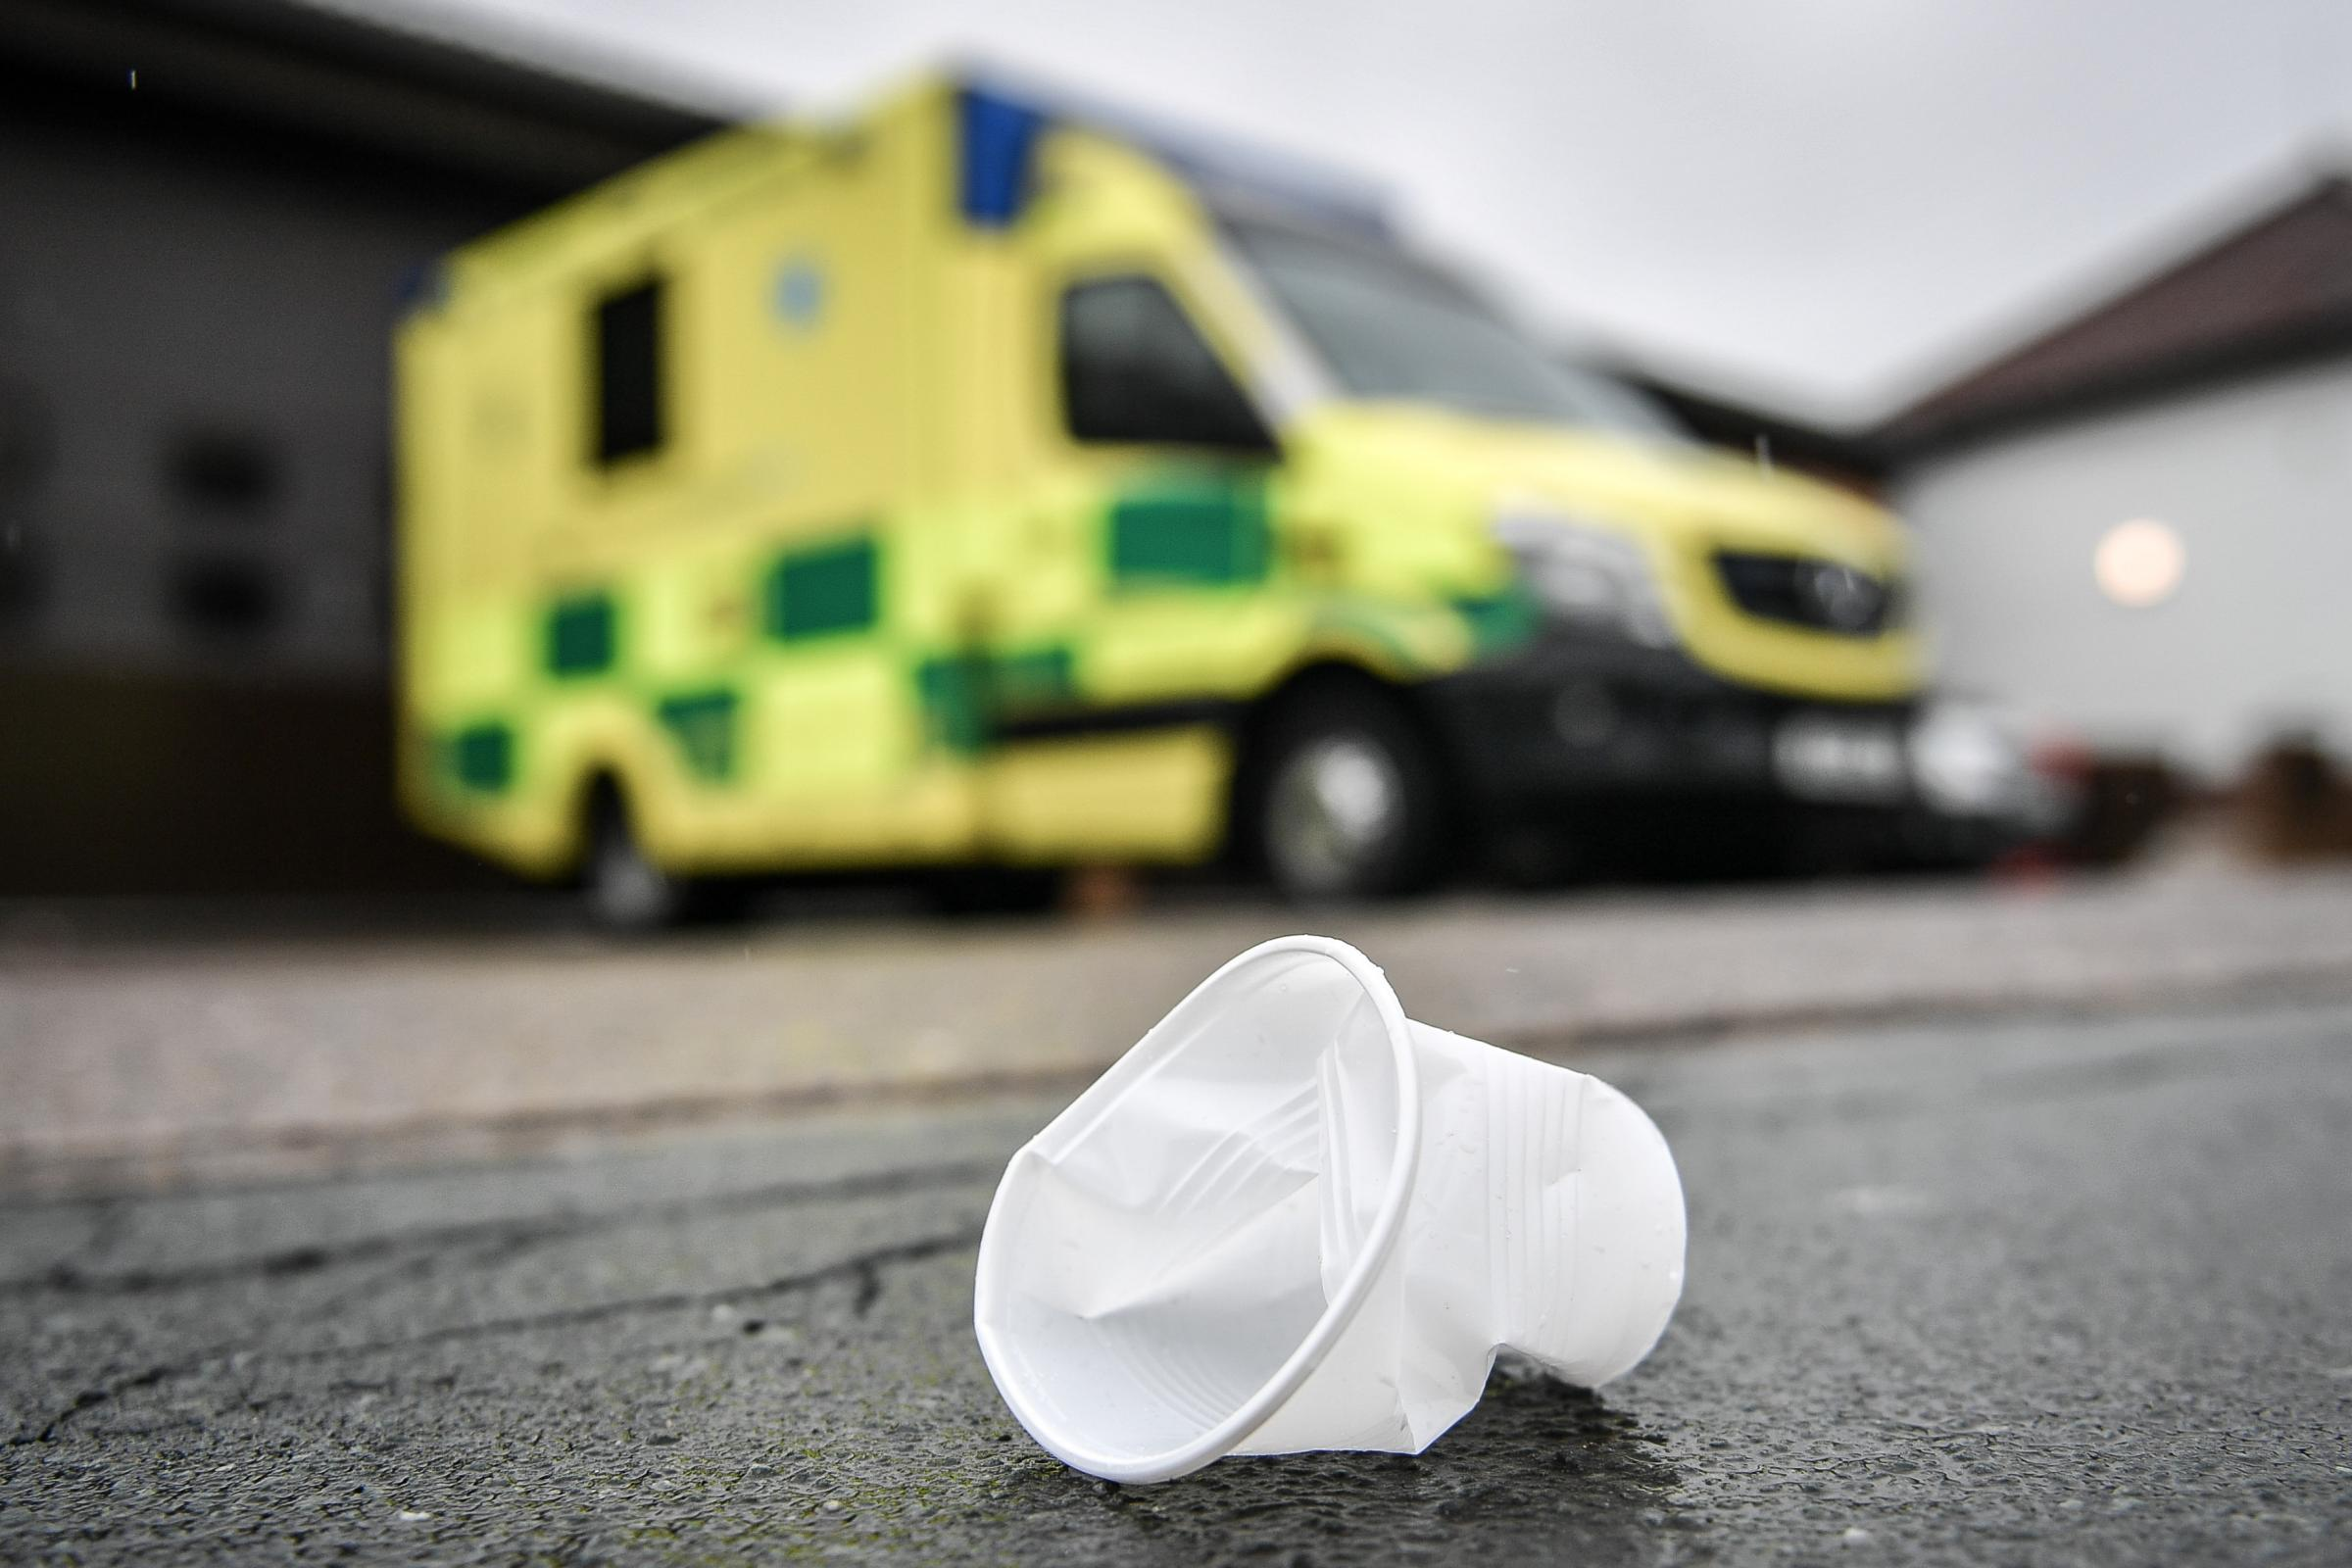 A used disposable drinking cup on the pavement by an ambulance station. While NHS trusts across the country opened up about the scale of disposable cup use, Government departments were less forthcoming. PRESS ASSOCIATION Photo. Picture date: Wednesday Apr